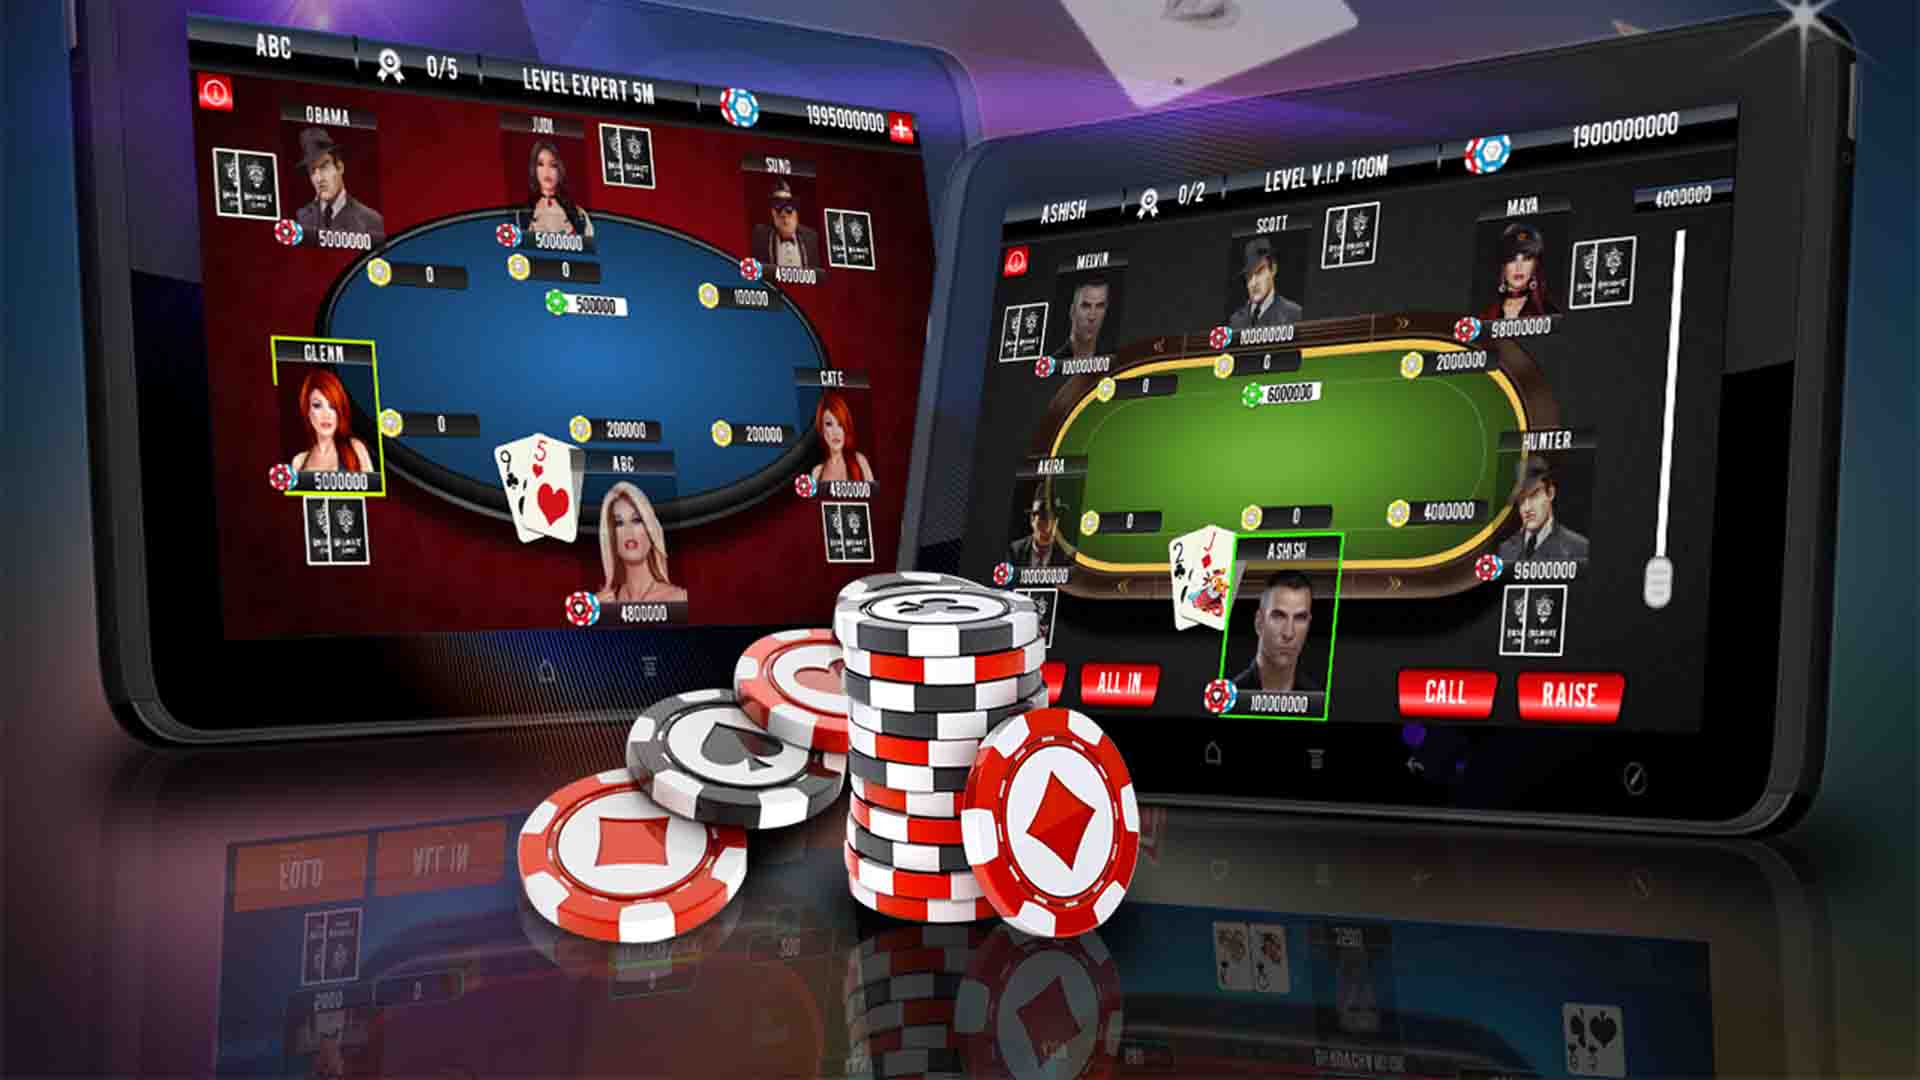 GameIntel Reports 50% Rise Globally In Online Poker